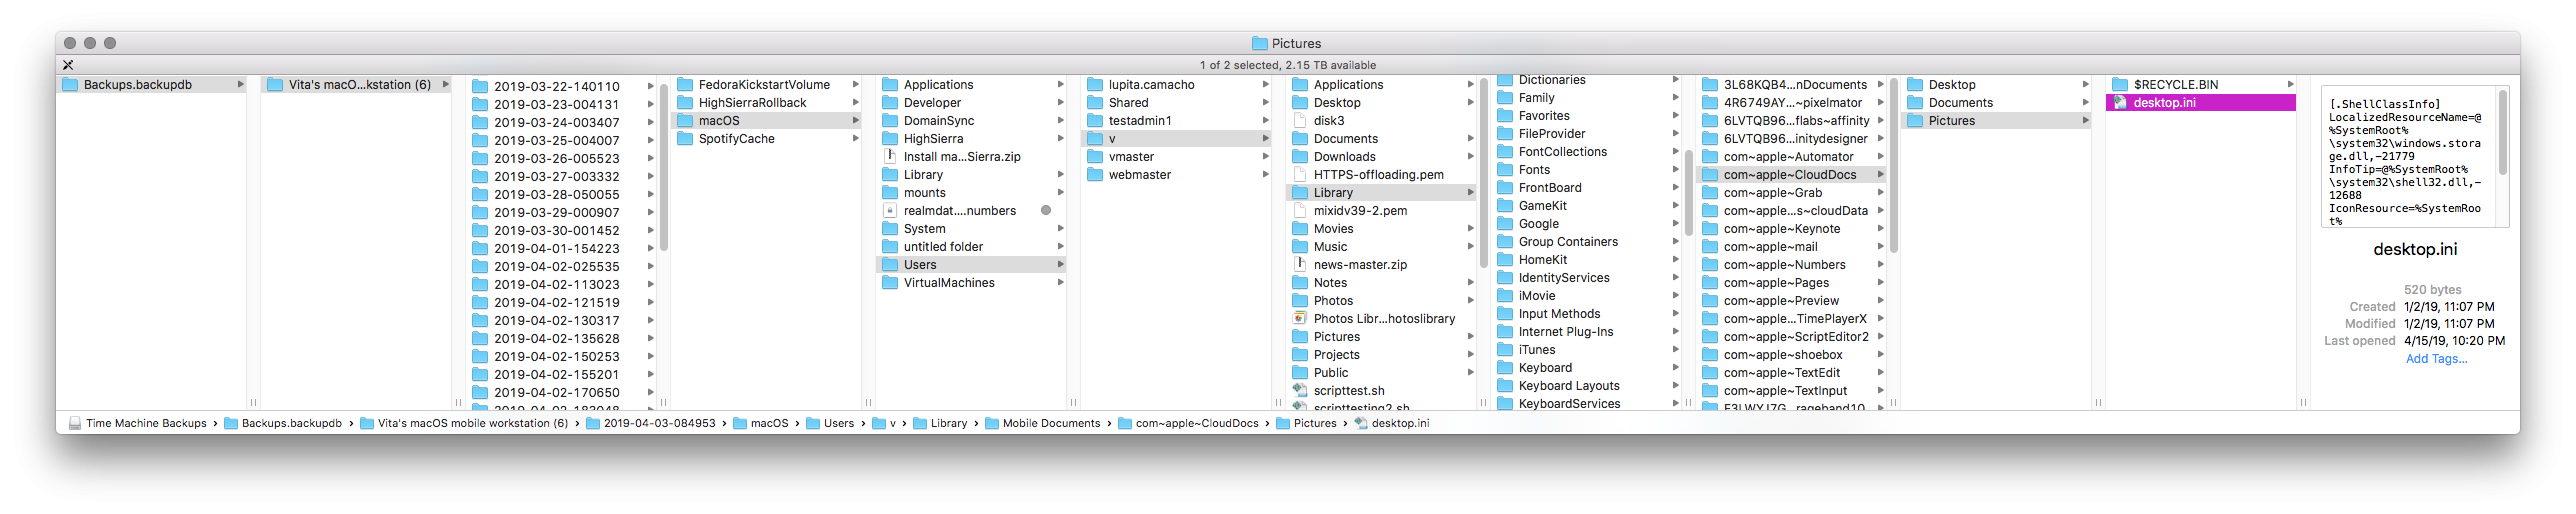 User preferences location - Affinity on Desktop Questions (Mac and